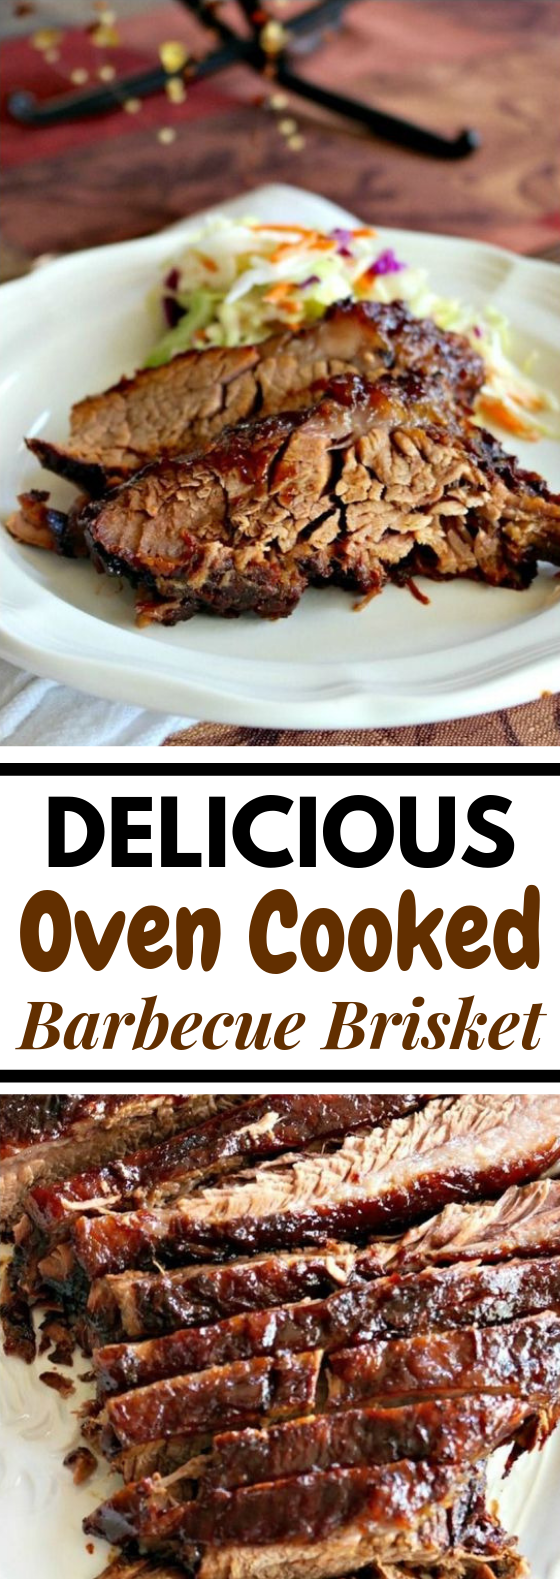 DELICIOUS OVEN COOKED BARBECUE BRISKET #Dinner #bbq